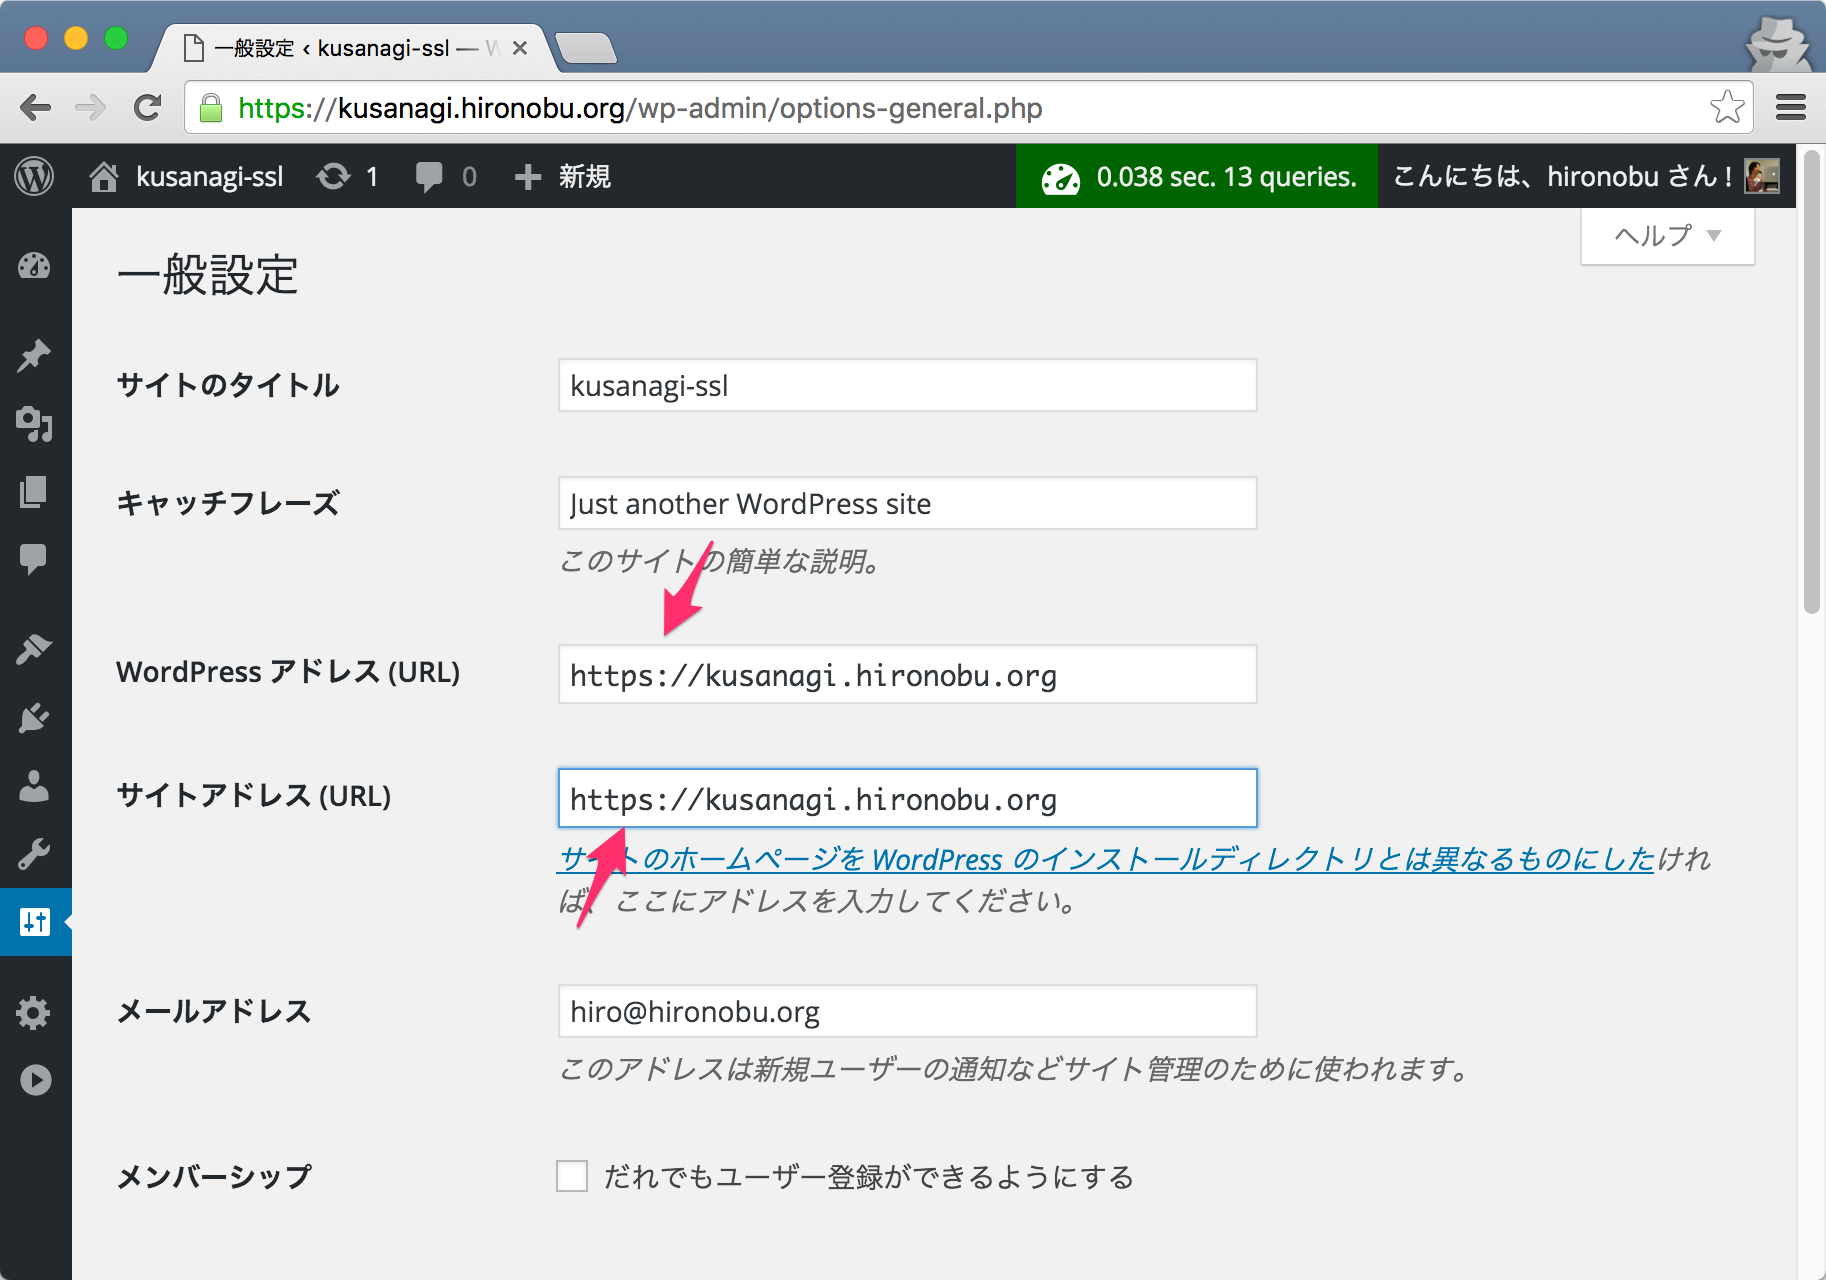 一般設定_‹_kusanagi-ssl_—_WordPress.png